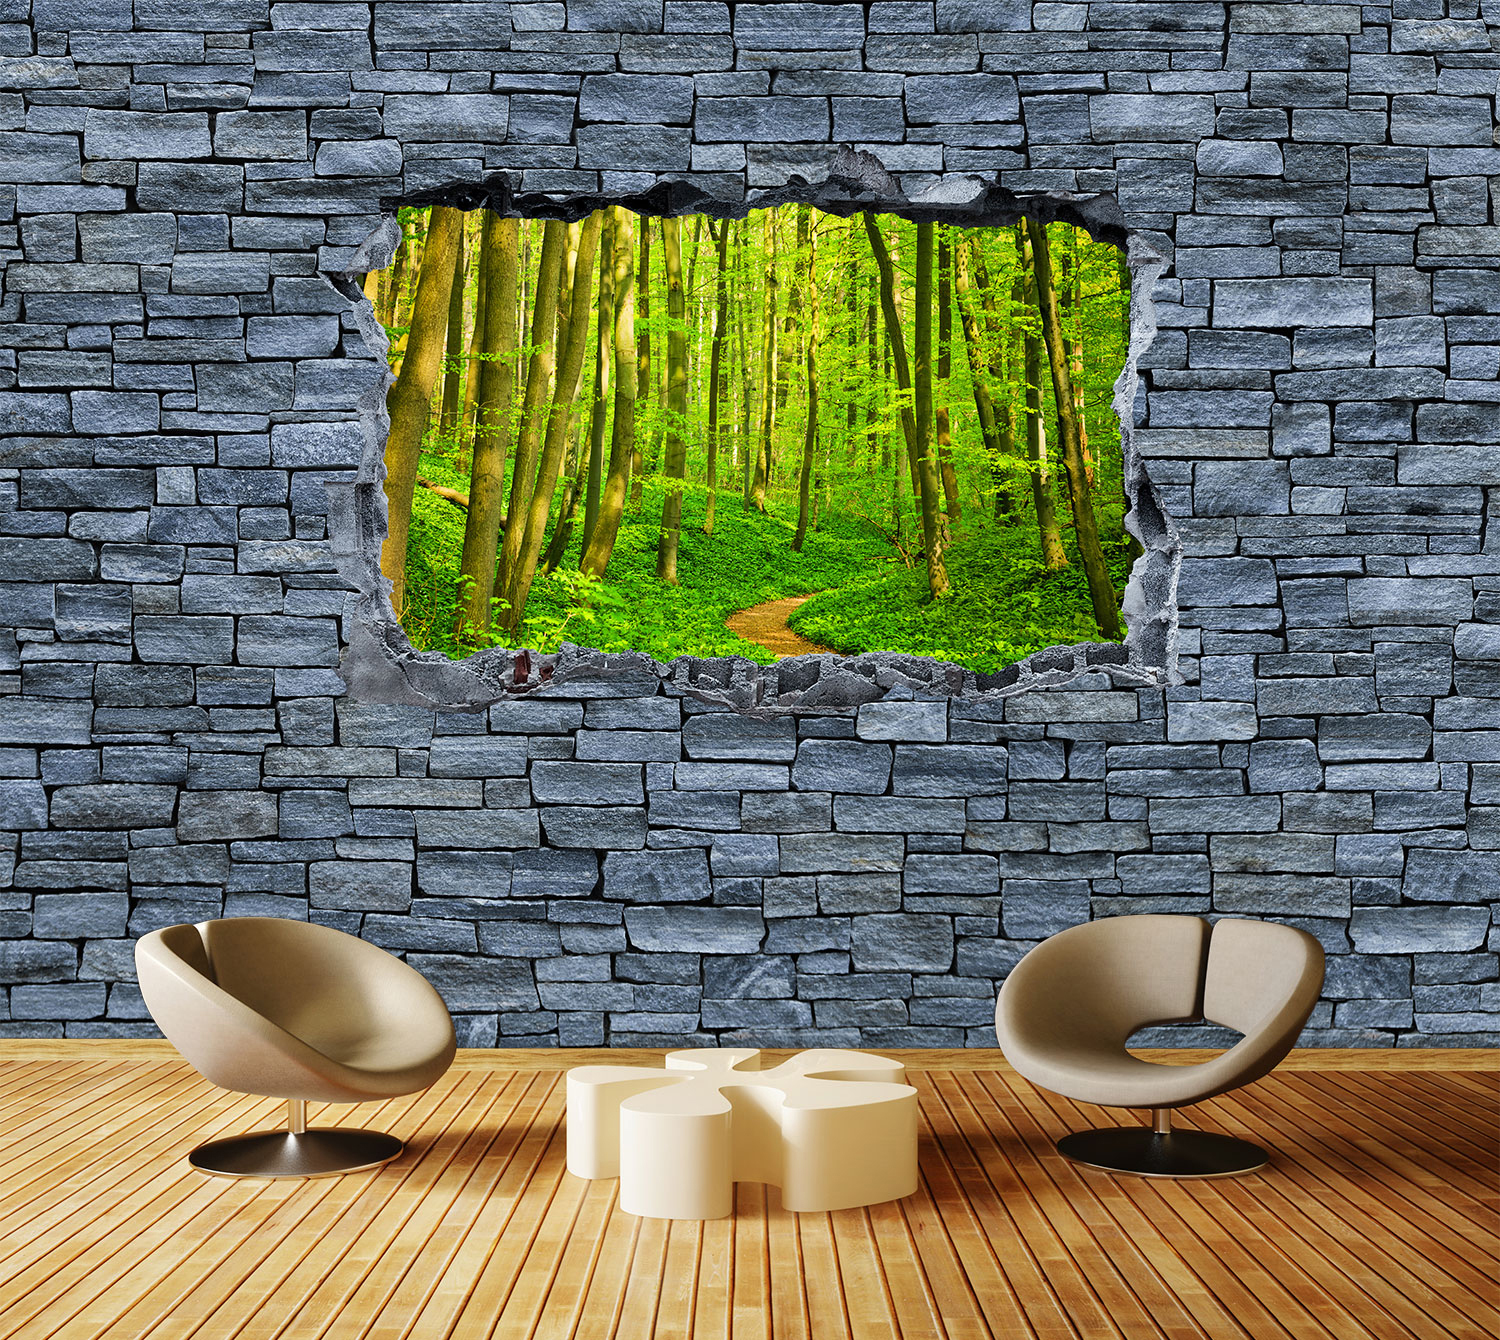 wandmotiv24 fototapete 3d optik weg im wald grobe steinmauer tapete kunstdruck wandbild 3d. Black Bedroom Furniture Sets. Home Design Ideas